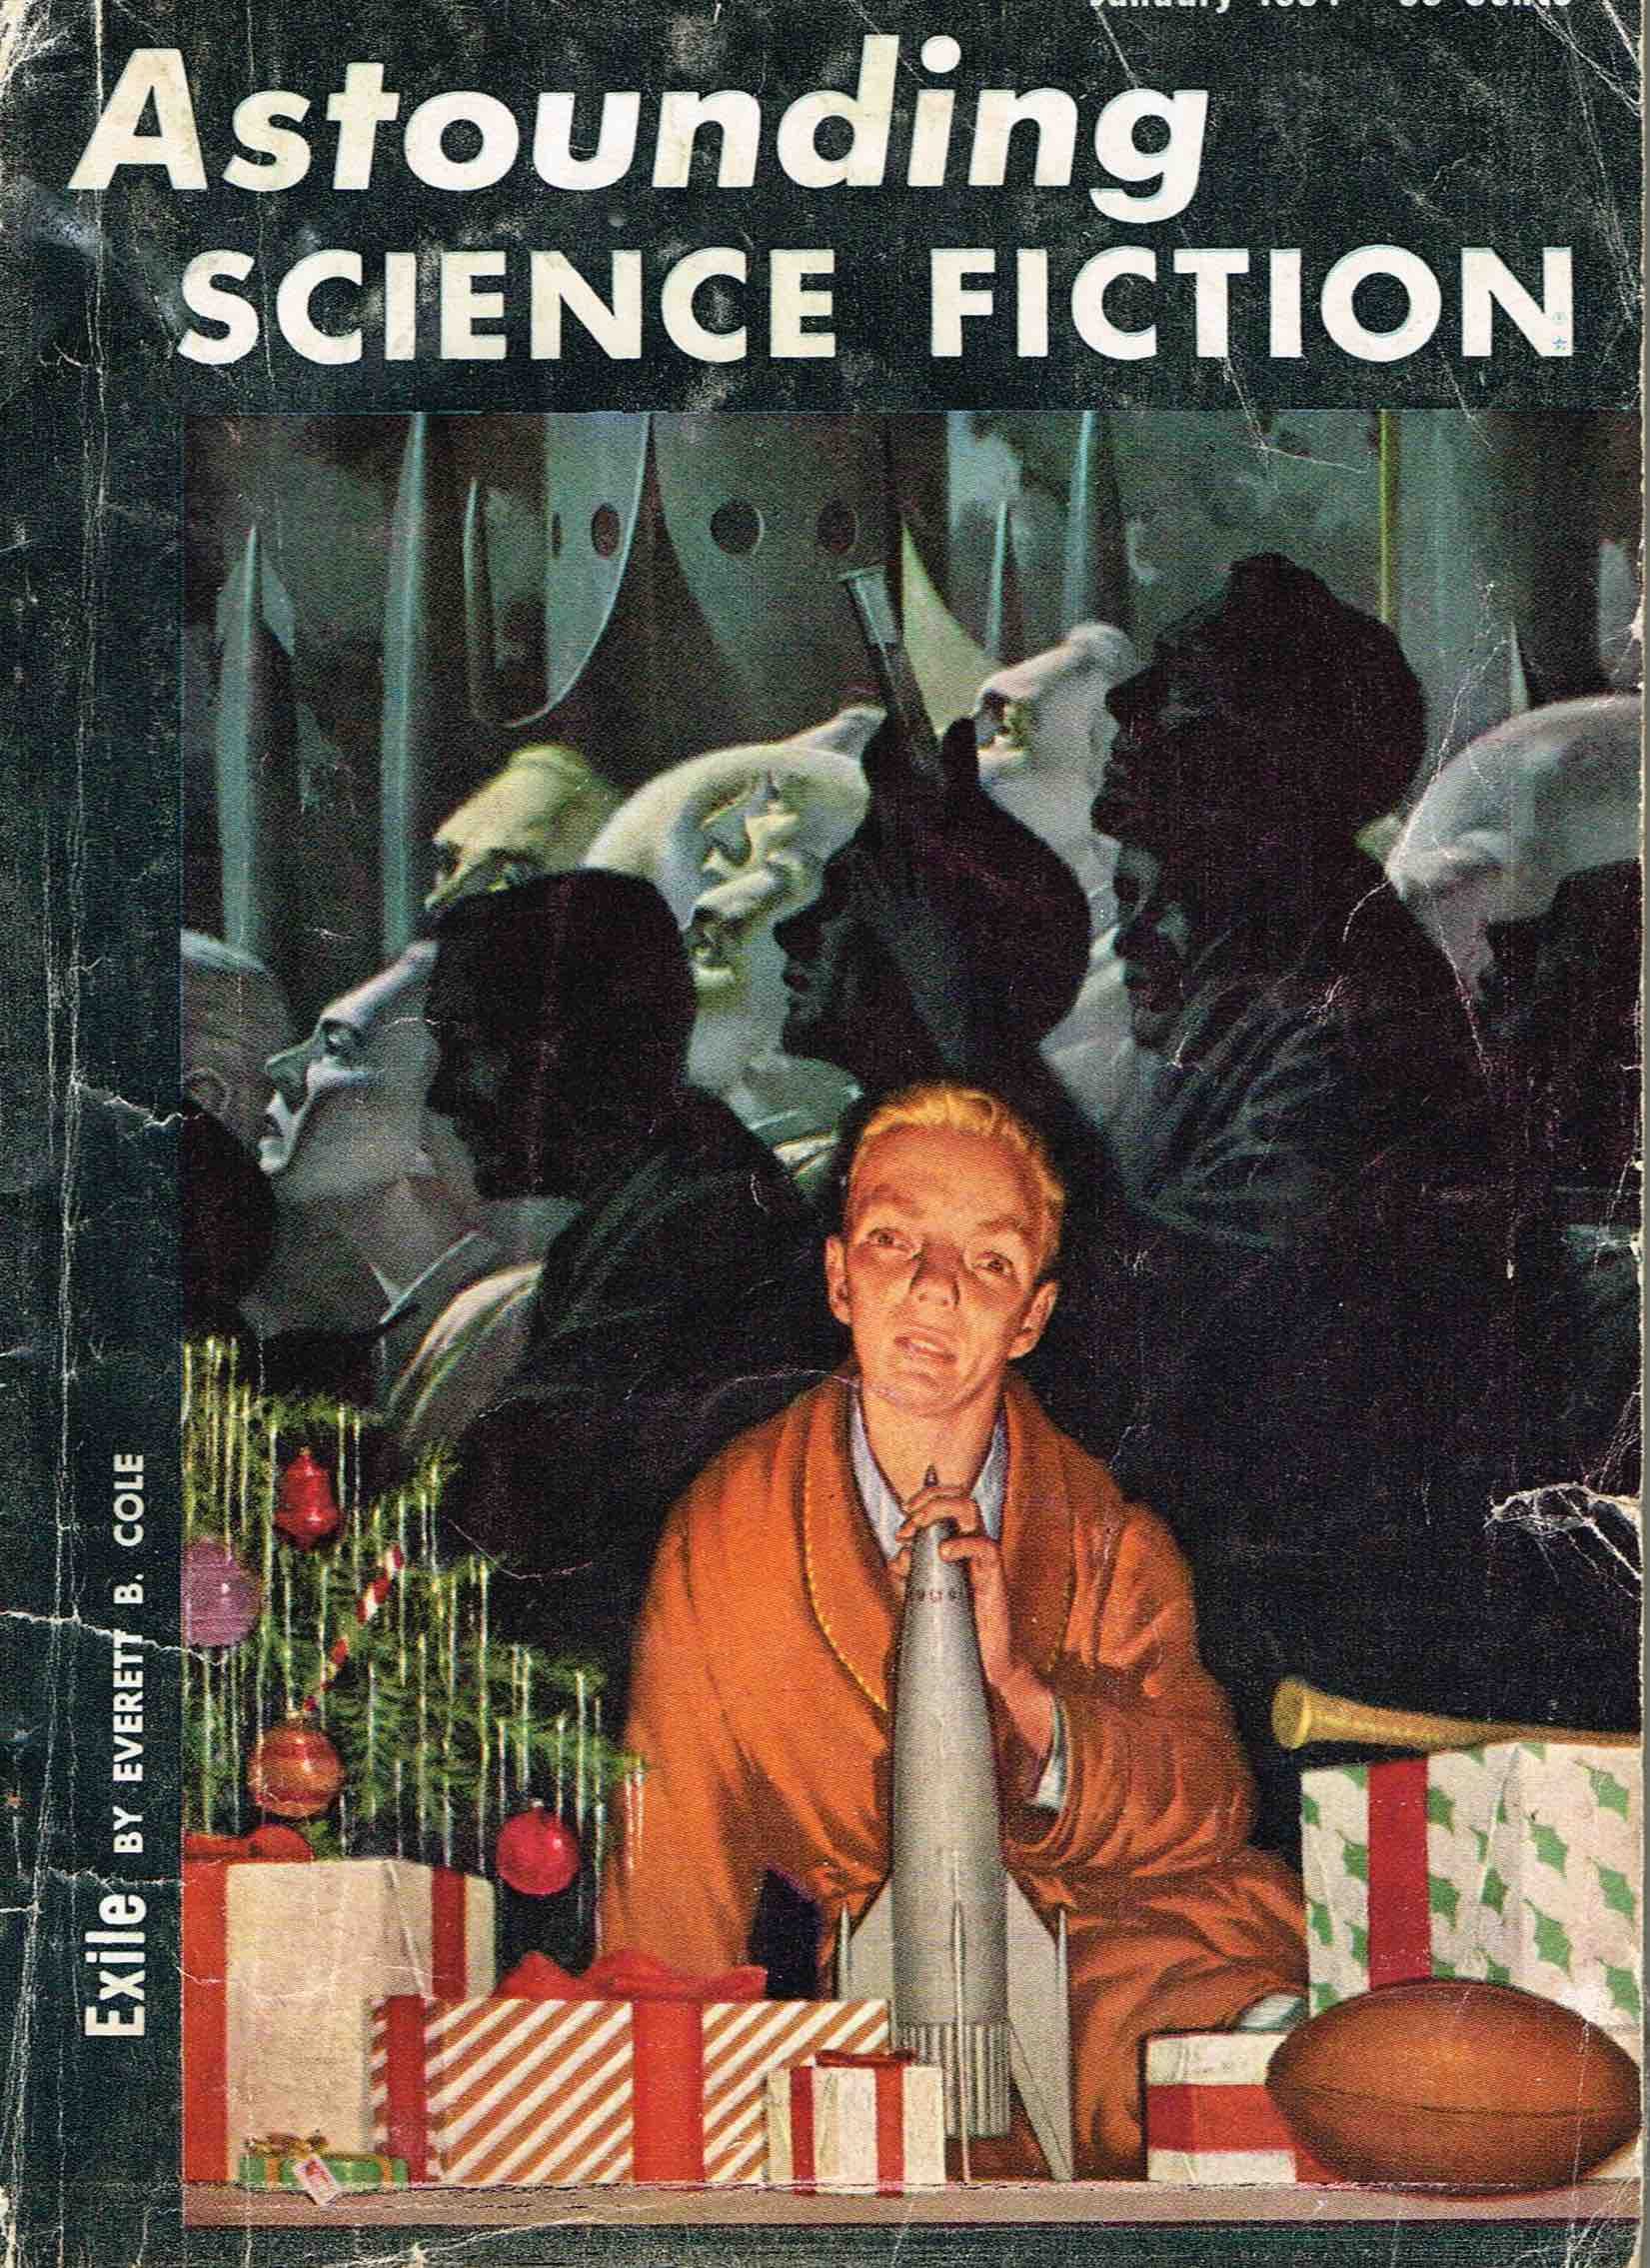 Cover of SciFi magazine with man and rocket